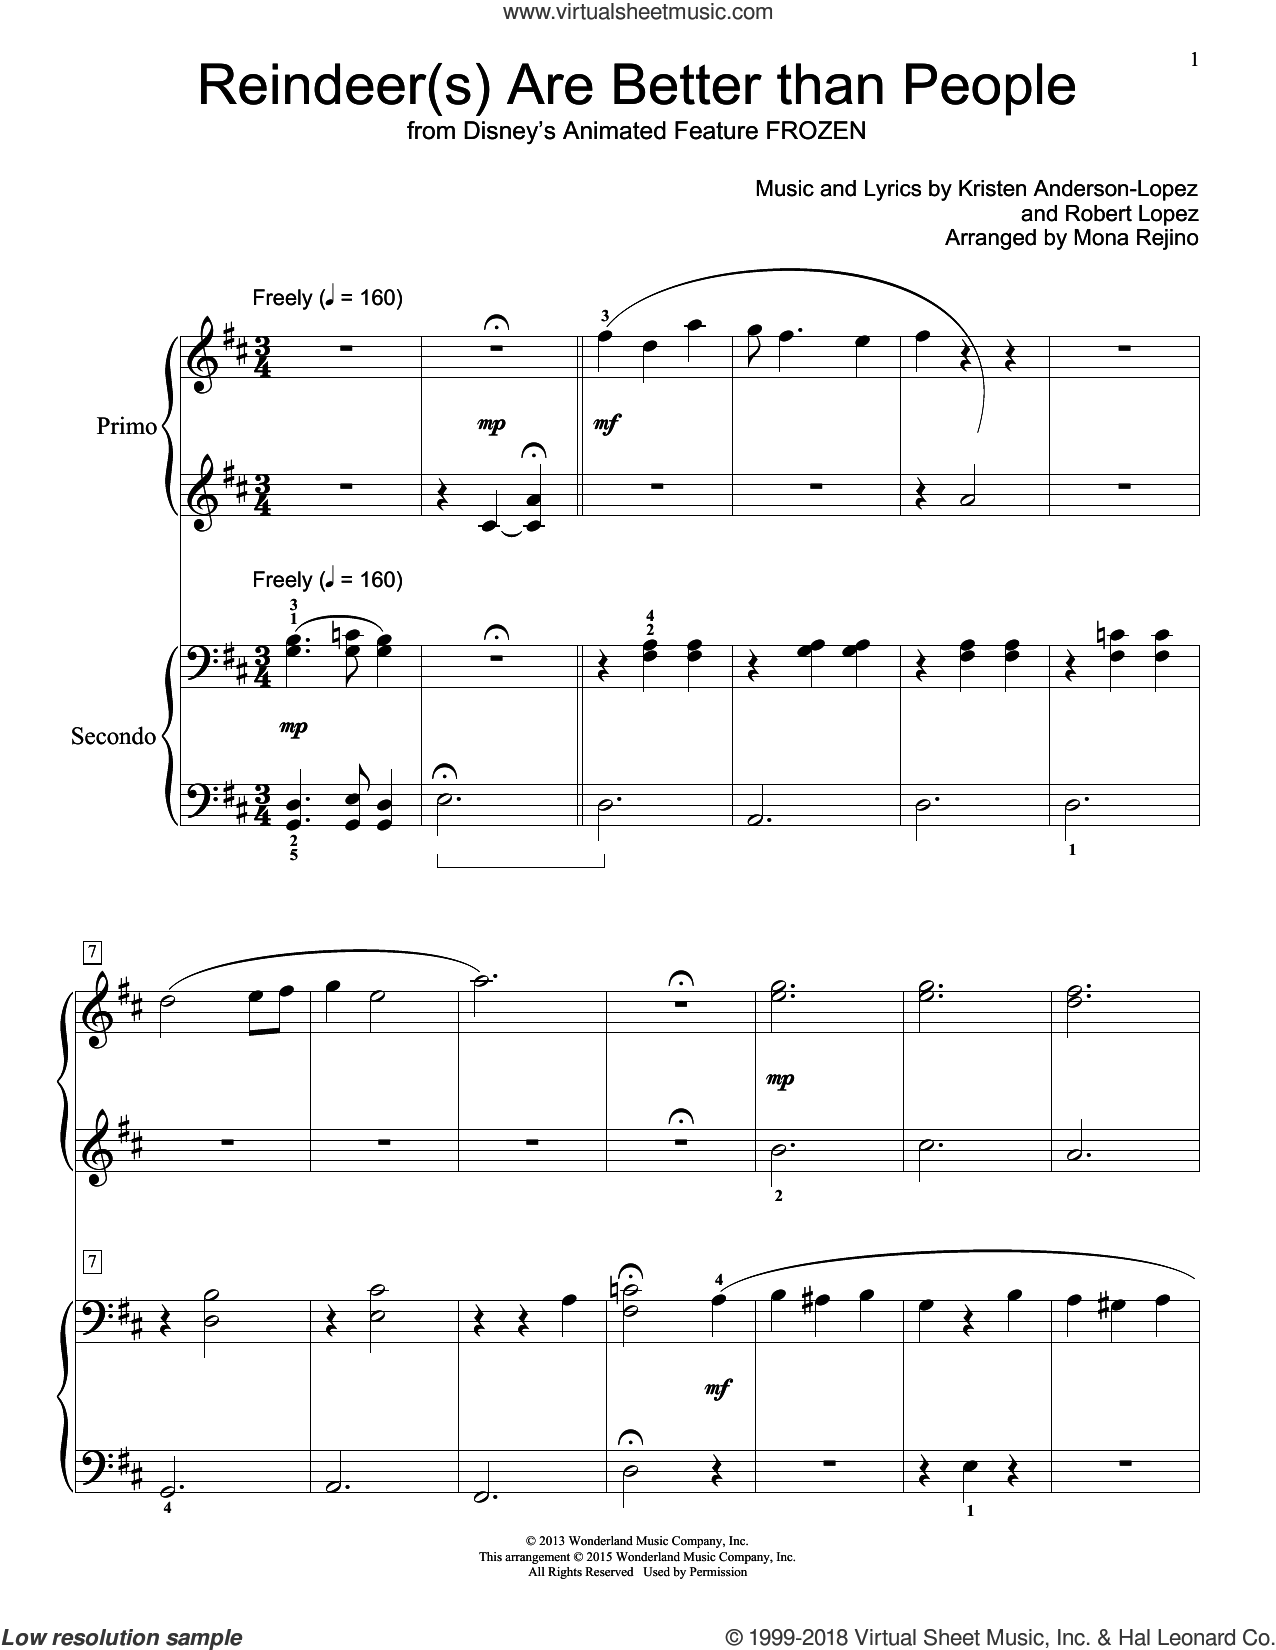 Reindeer(s) Are Better Than People sheet music for piano four hands by Mona Rejino, Kristen Anderson-Lopez and Robert Lopez, intermediate skill level